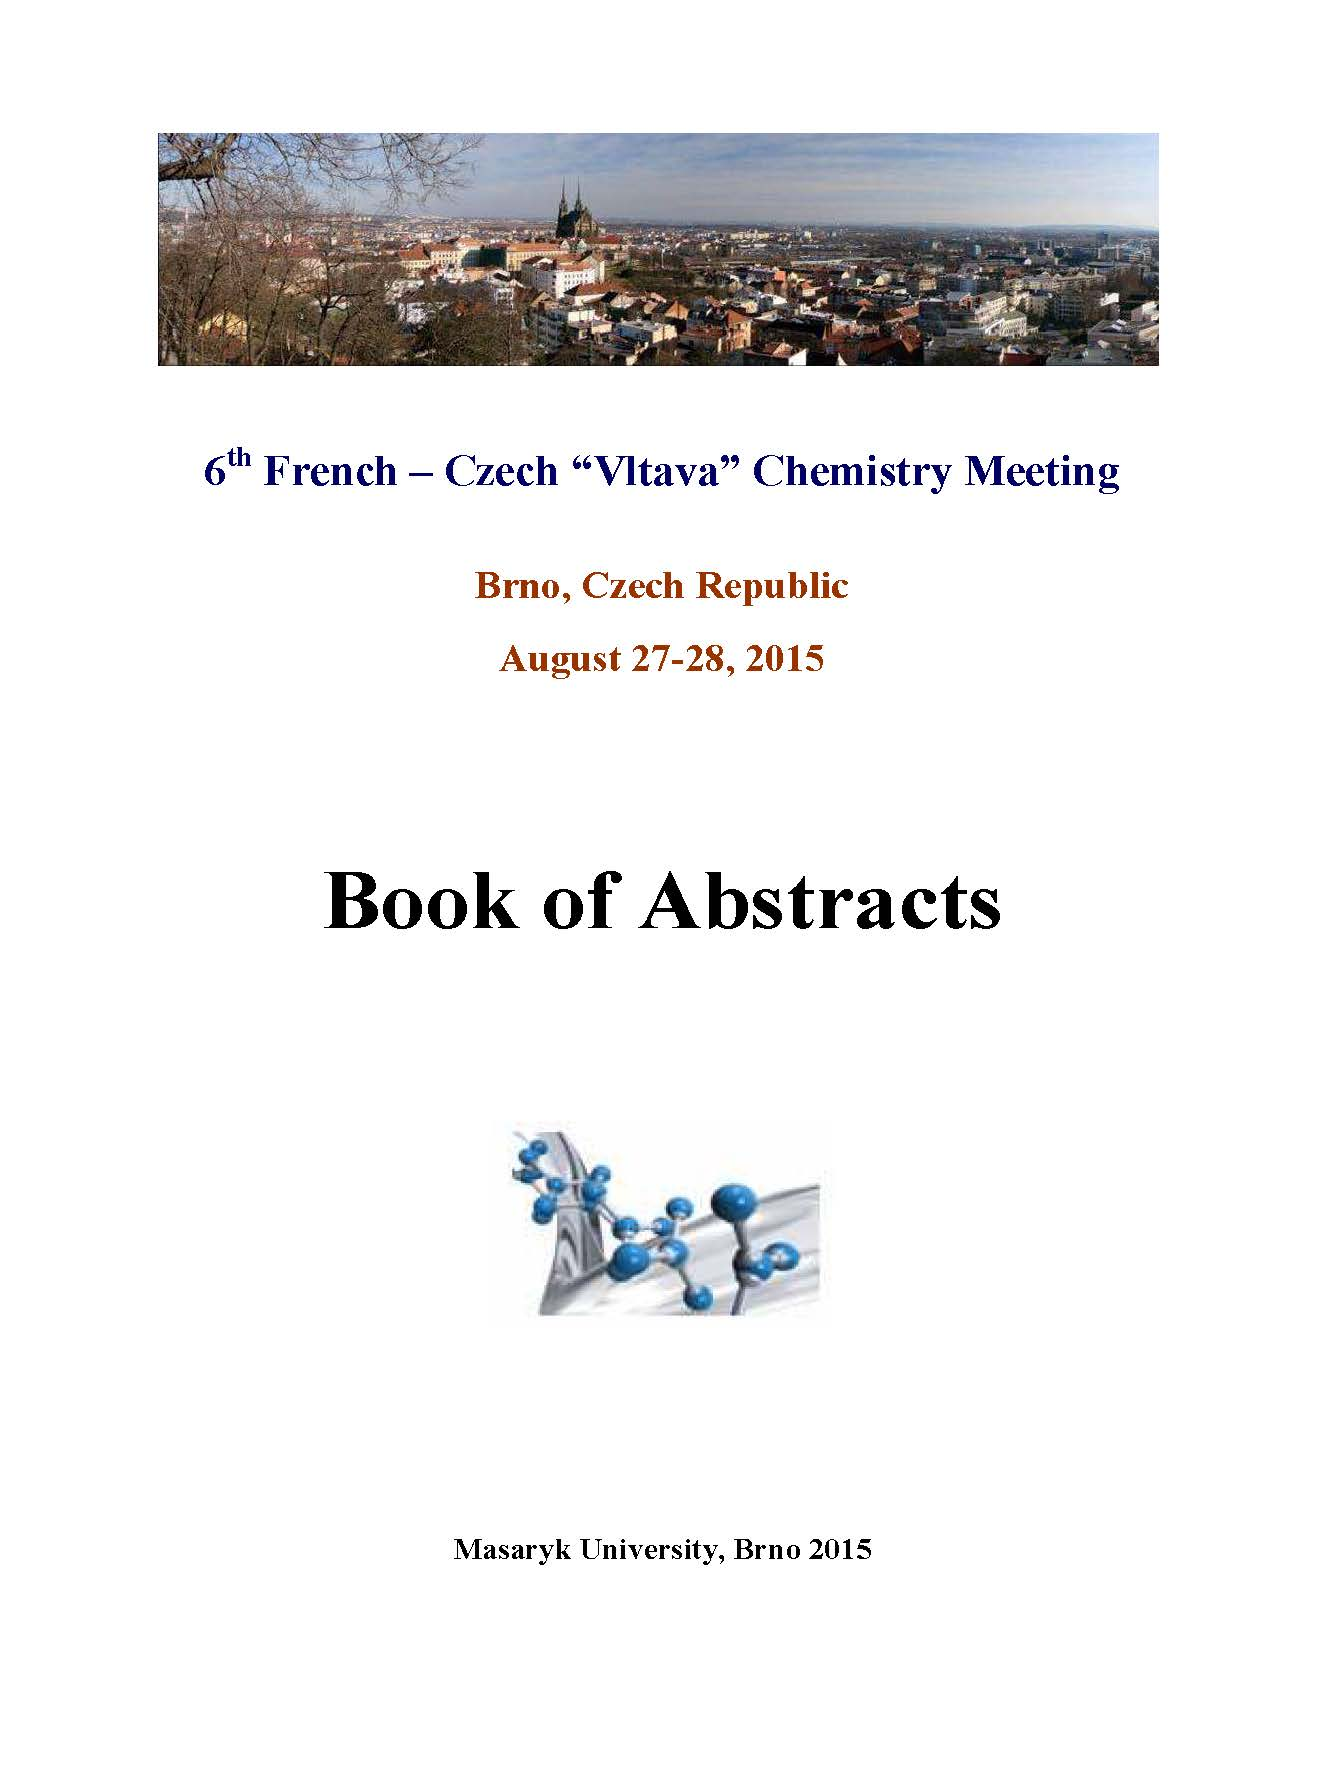 """Obálka pro 6th French–Czech """"Vltava"""" Chemistry Meeting. Book of Abstracts"""